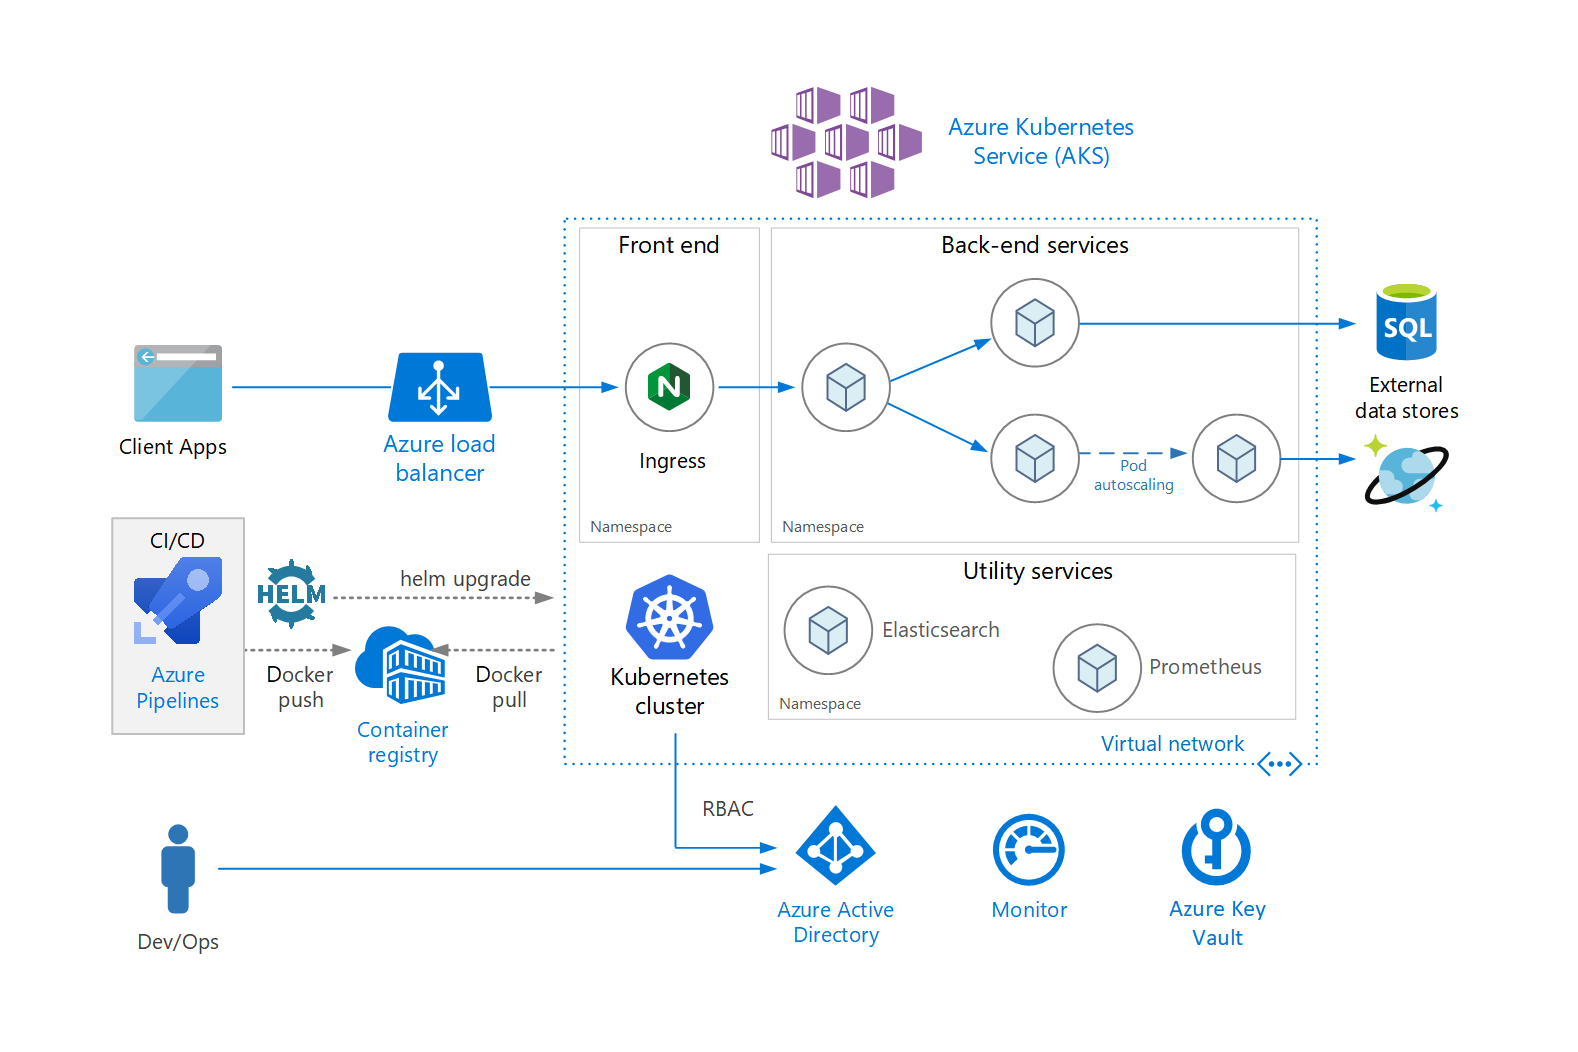 Architecture Diagram of microservices architecture on Azure Kubernetes Service (AKS).